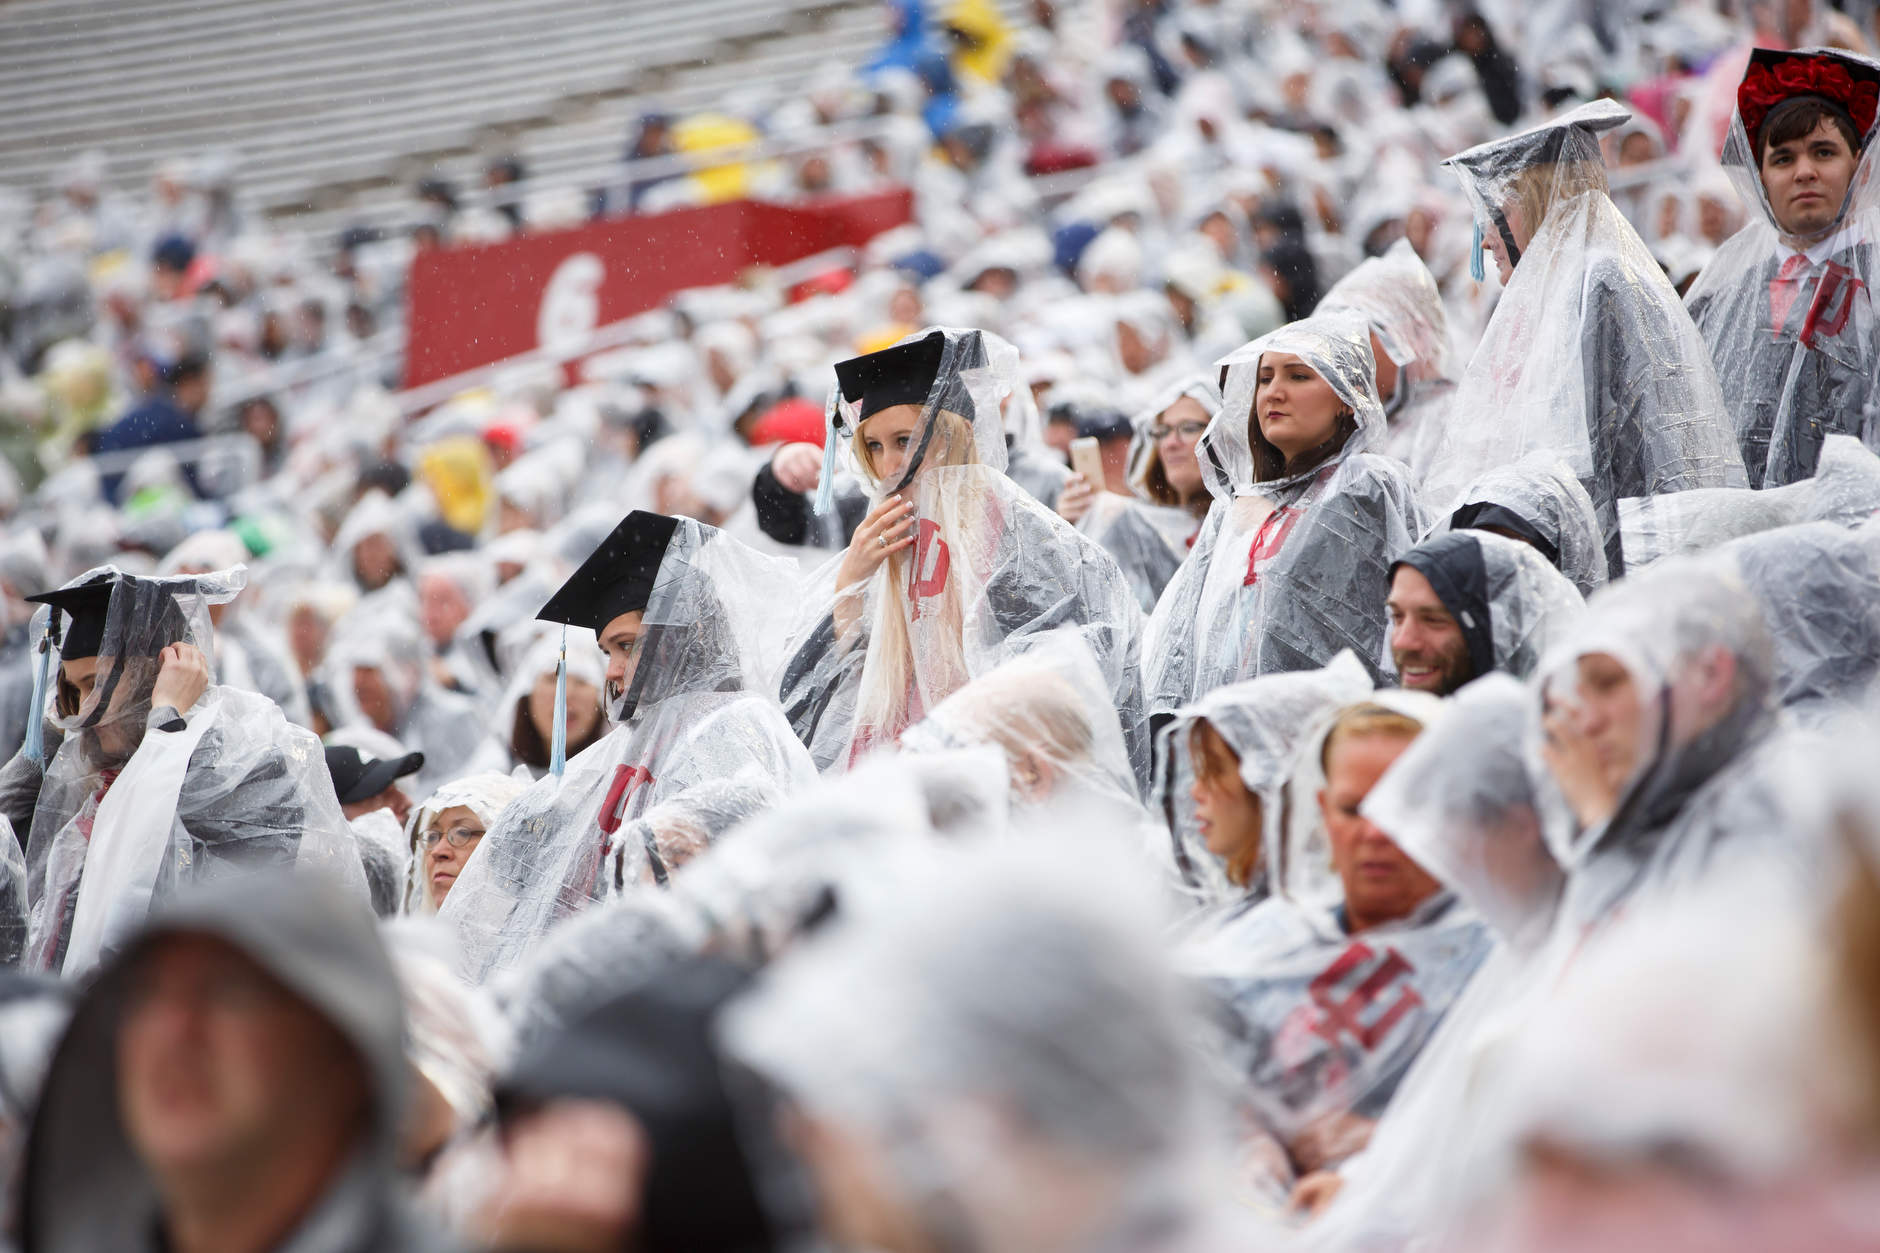 Graduates walk in the processional for the Indiana University Bloomington Undergraduate Commencement at Memorial Stadium on Saturday, May 4, 2019. (James Brosher/Indiana University)